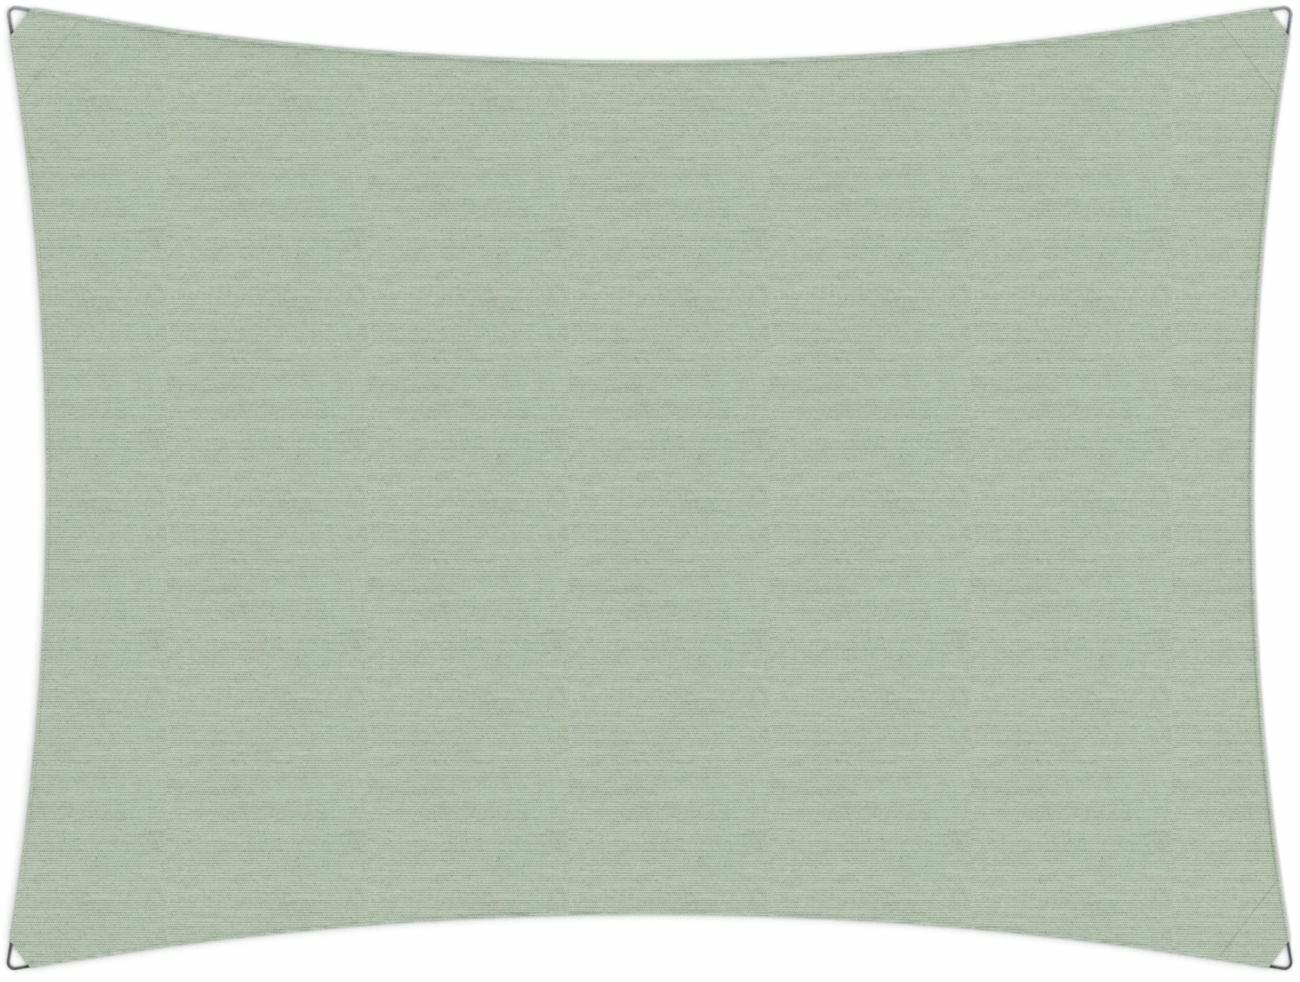 Ingenua shade sail Rectangle 5 x 3 m, for outdoor use. Colour of the fabric shade sail Mint.